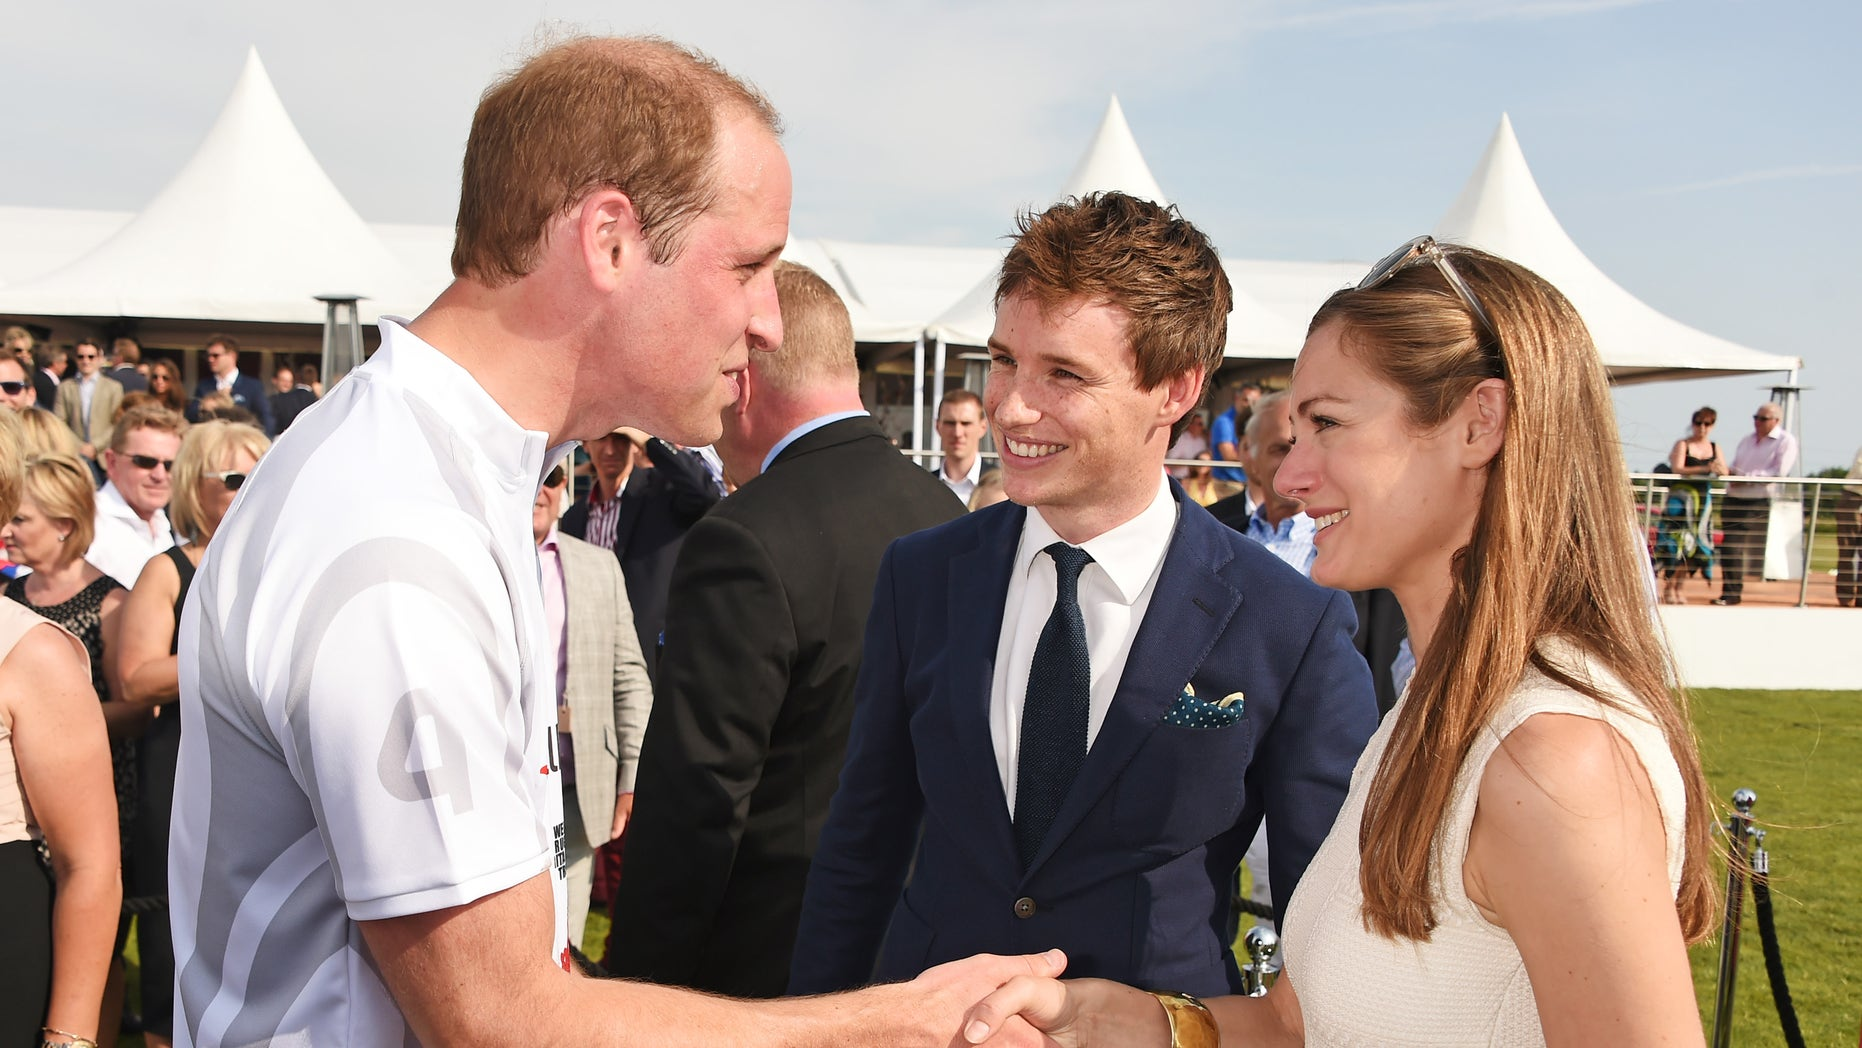 Prince William, left, Eddie Redmayne and Hannah Bagshawe attend the Audi Polo Challenge 2015 at Cambridge County Polo Club on July 3, 2015 in Cambridge, England.